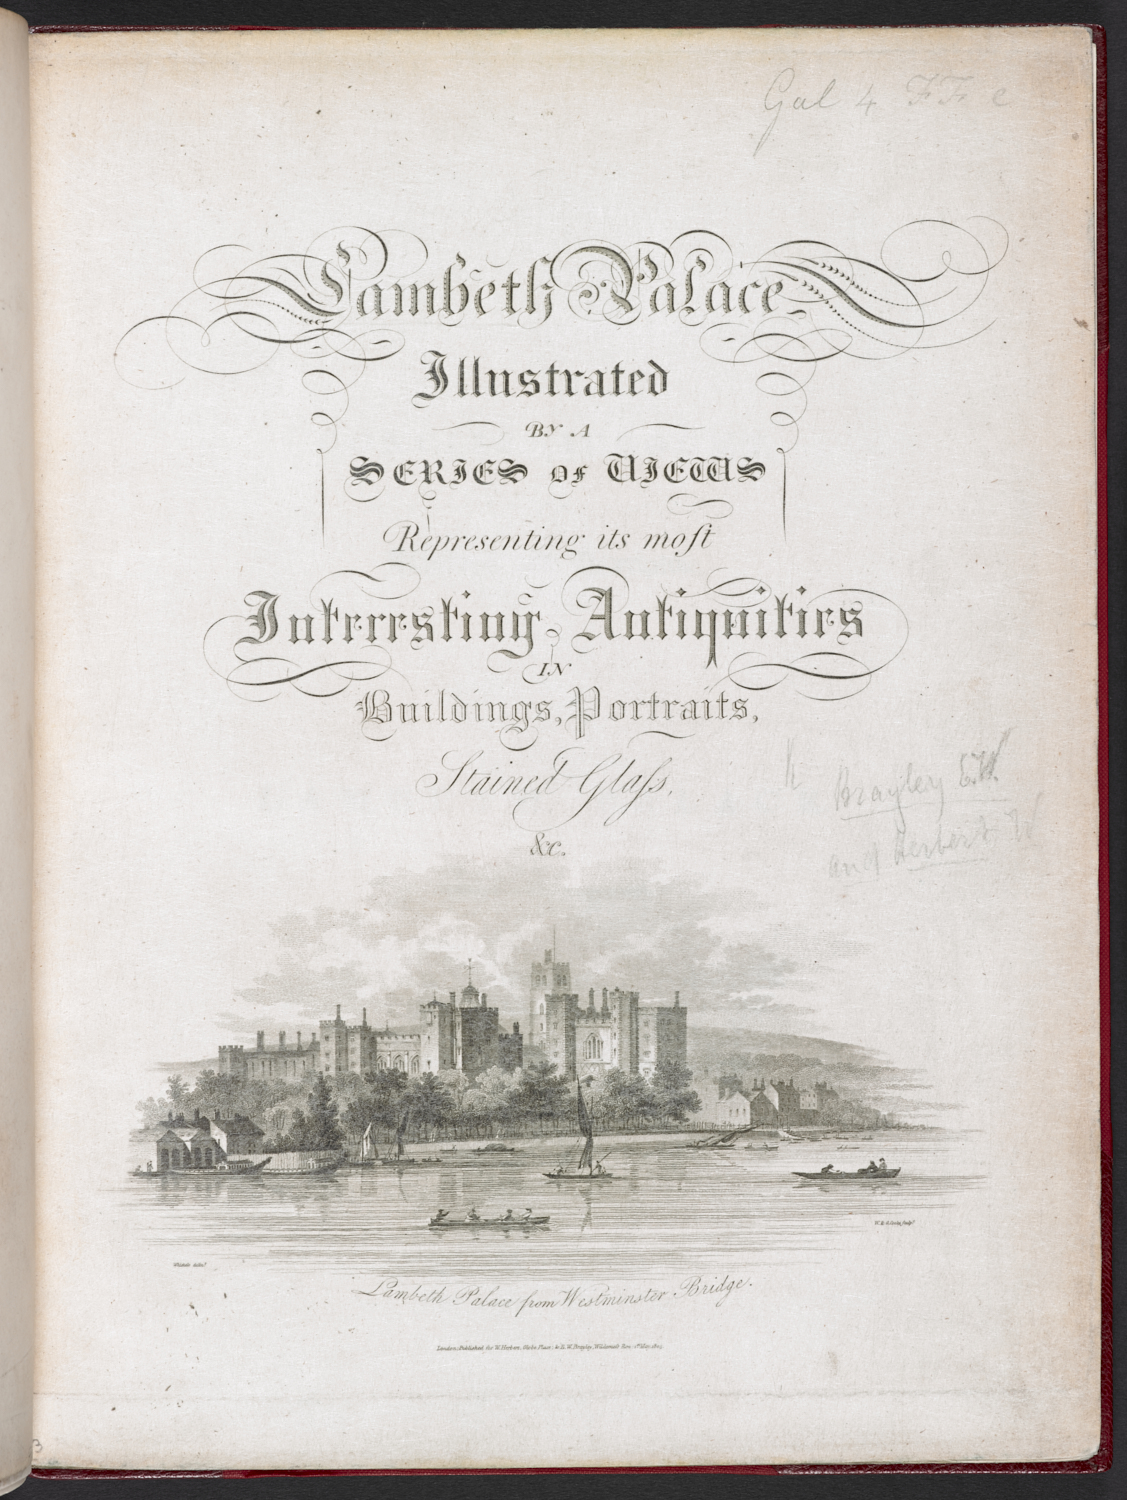 W. & G. Cooke, Title page to William Herbert and Edward Wedlake Brayley, 'Lambeth Palace Illustrated…' (London: W. Herbert & E. W. Brayley, 1806), etching and engraving = British Library 578.i.36